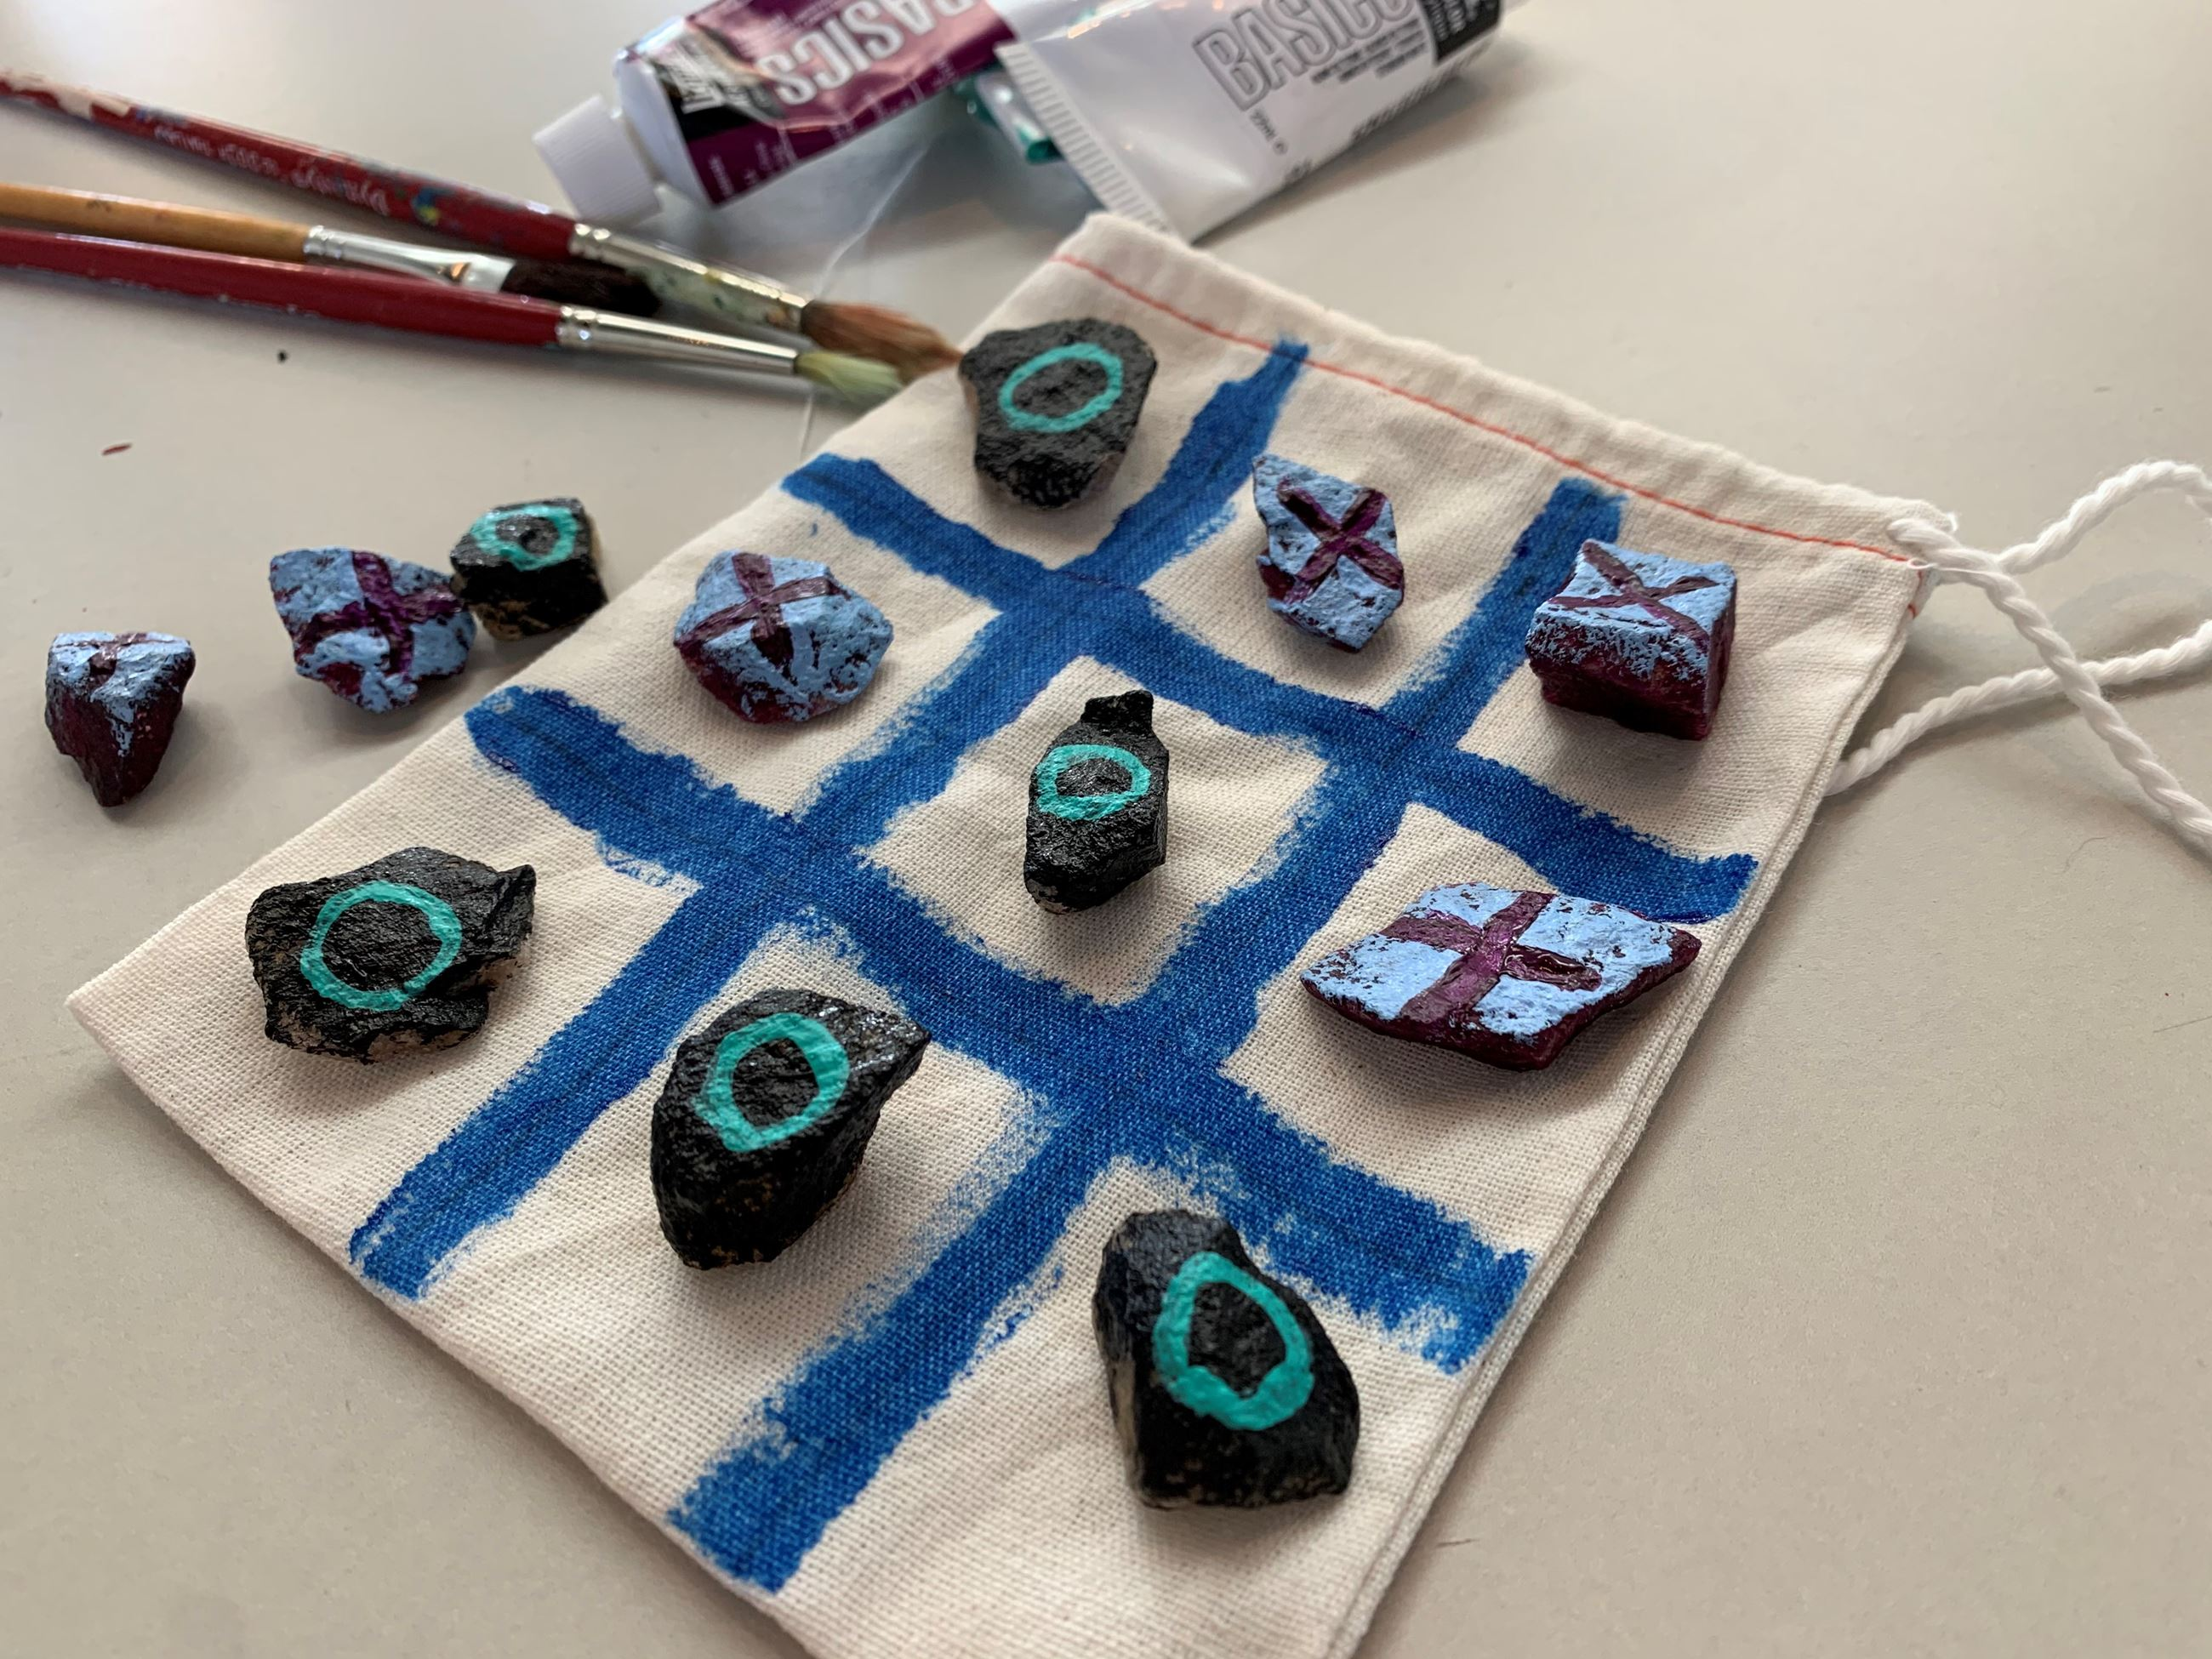 cloth bag with painted stones to make a tic tac toe game